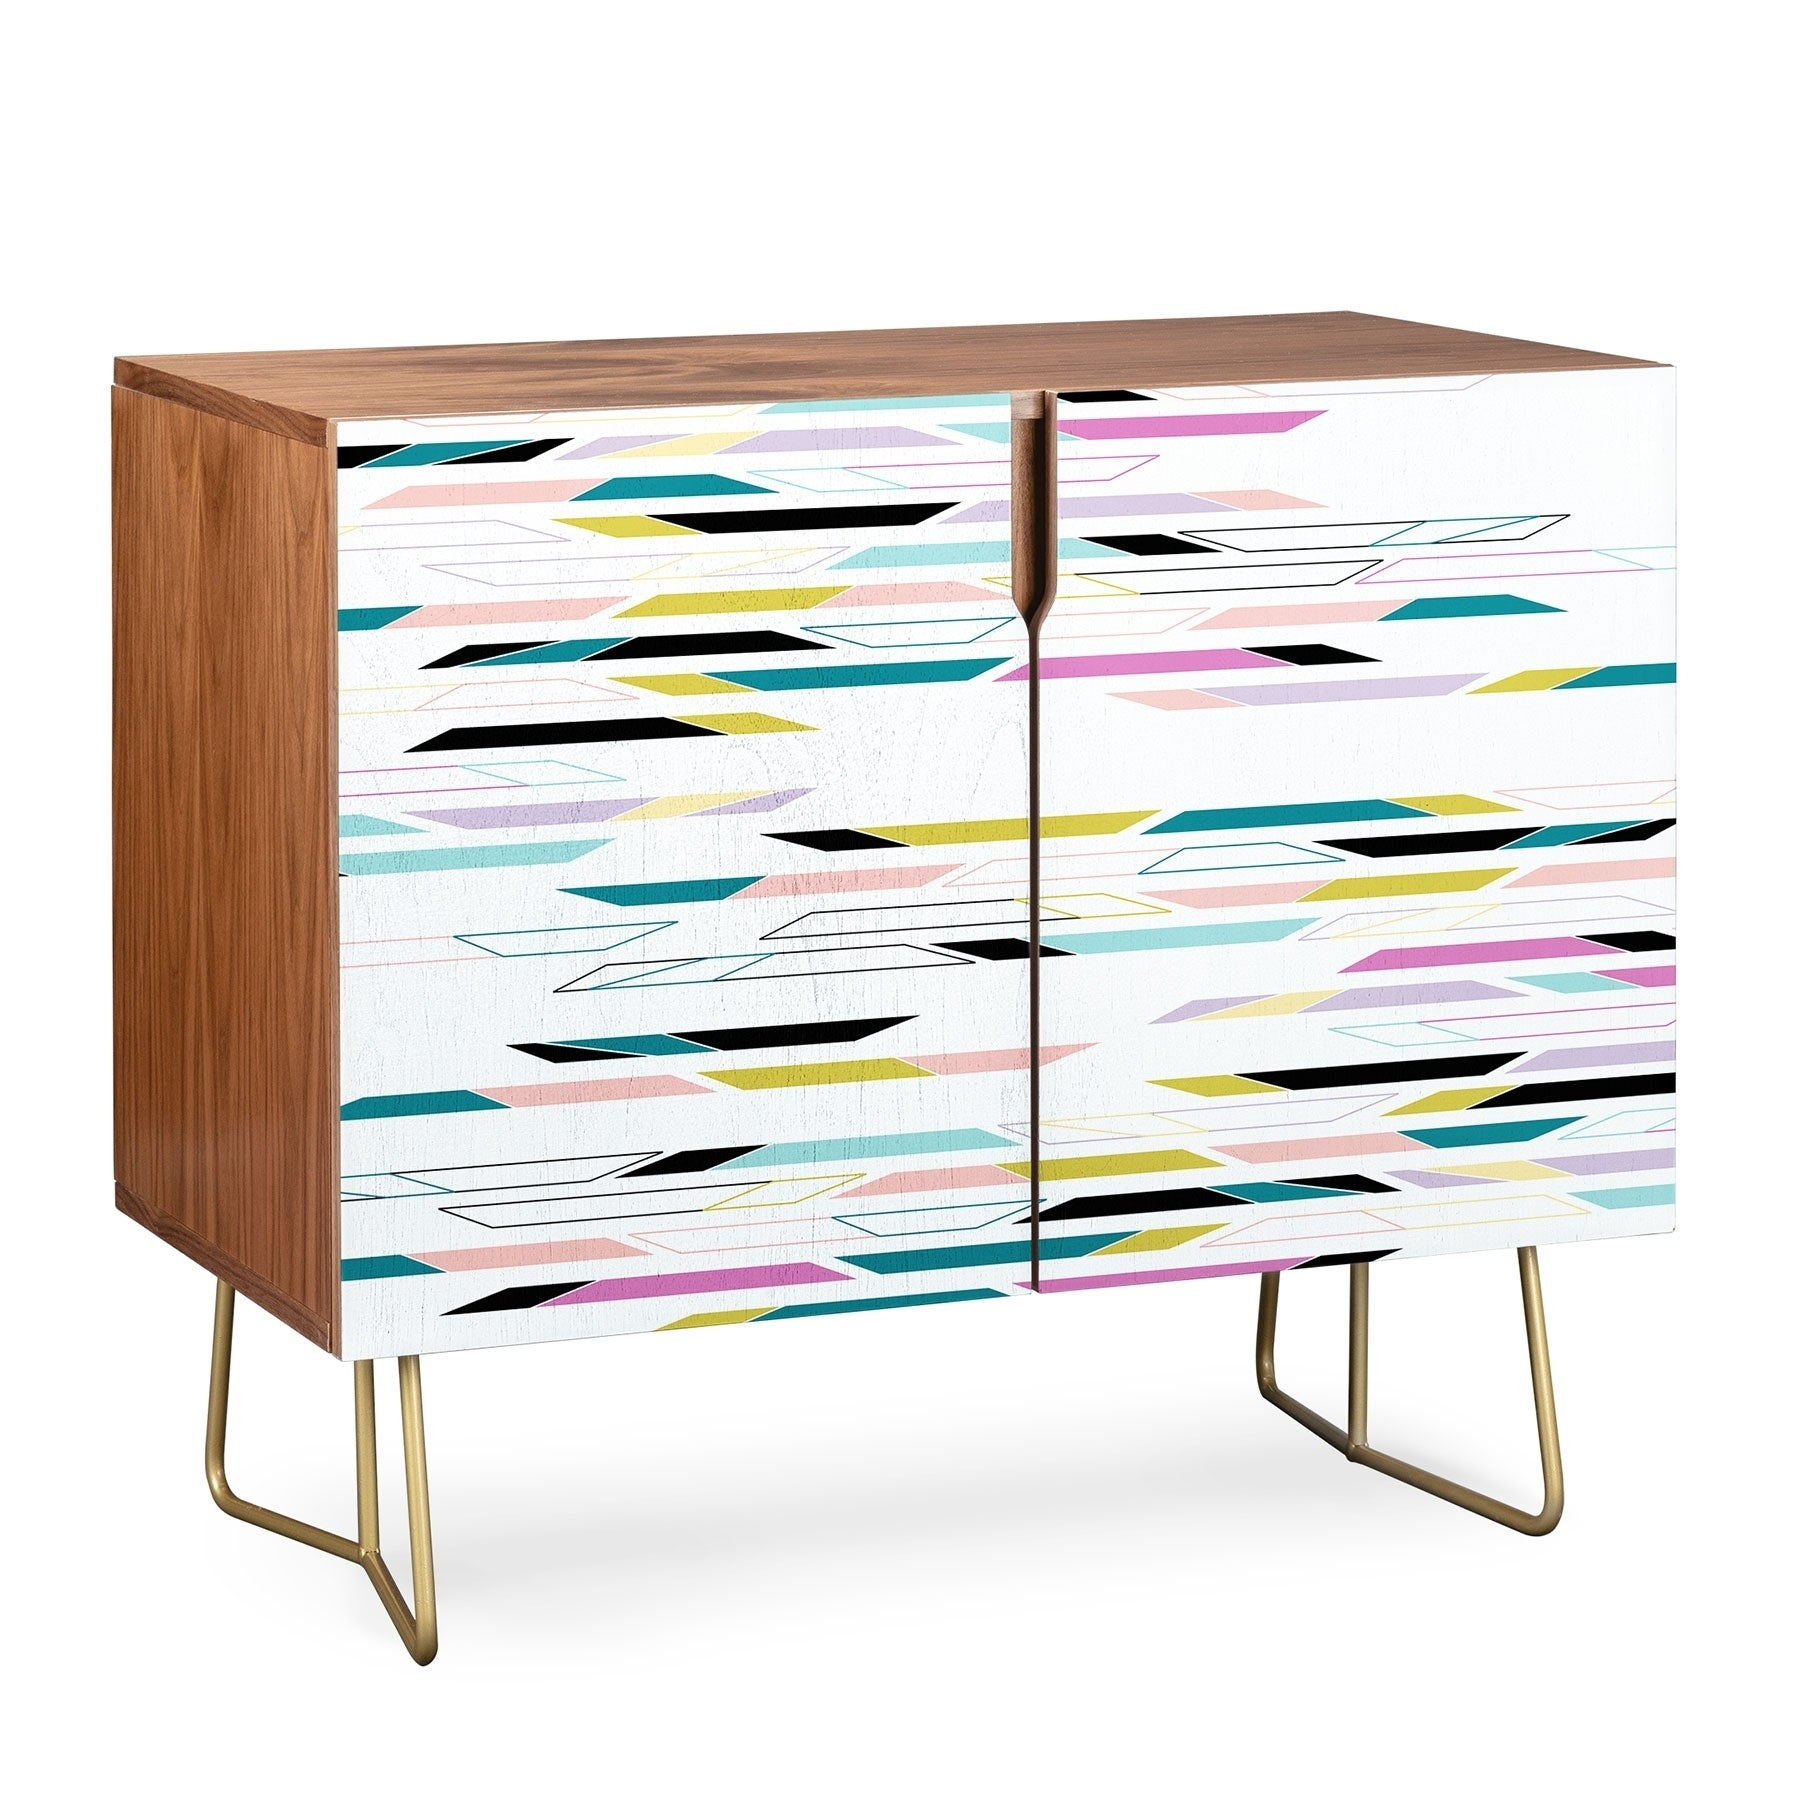 Deny Designs Multi Colored Geometric Shapes Credenza (Birch Or Walnut, 3  Leg Options) With Multi Colored Geometric Shapes Credenzas (Photo 2 of 30)